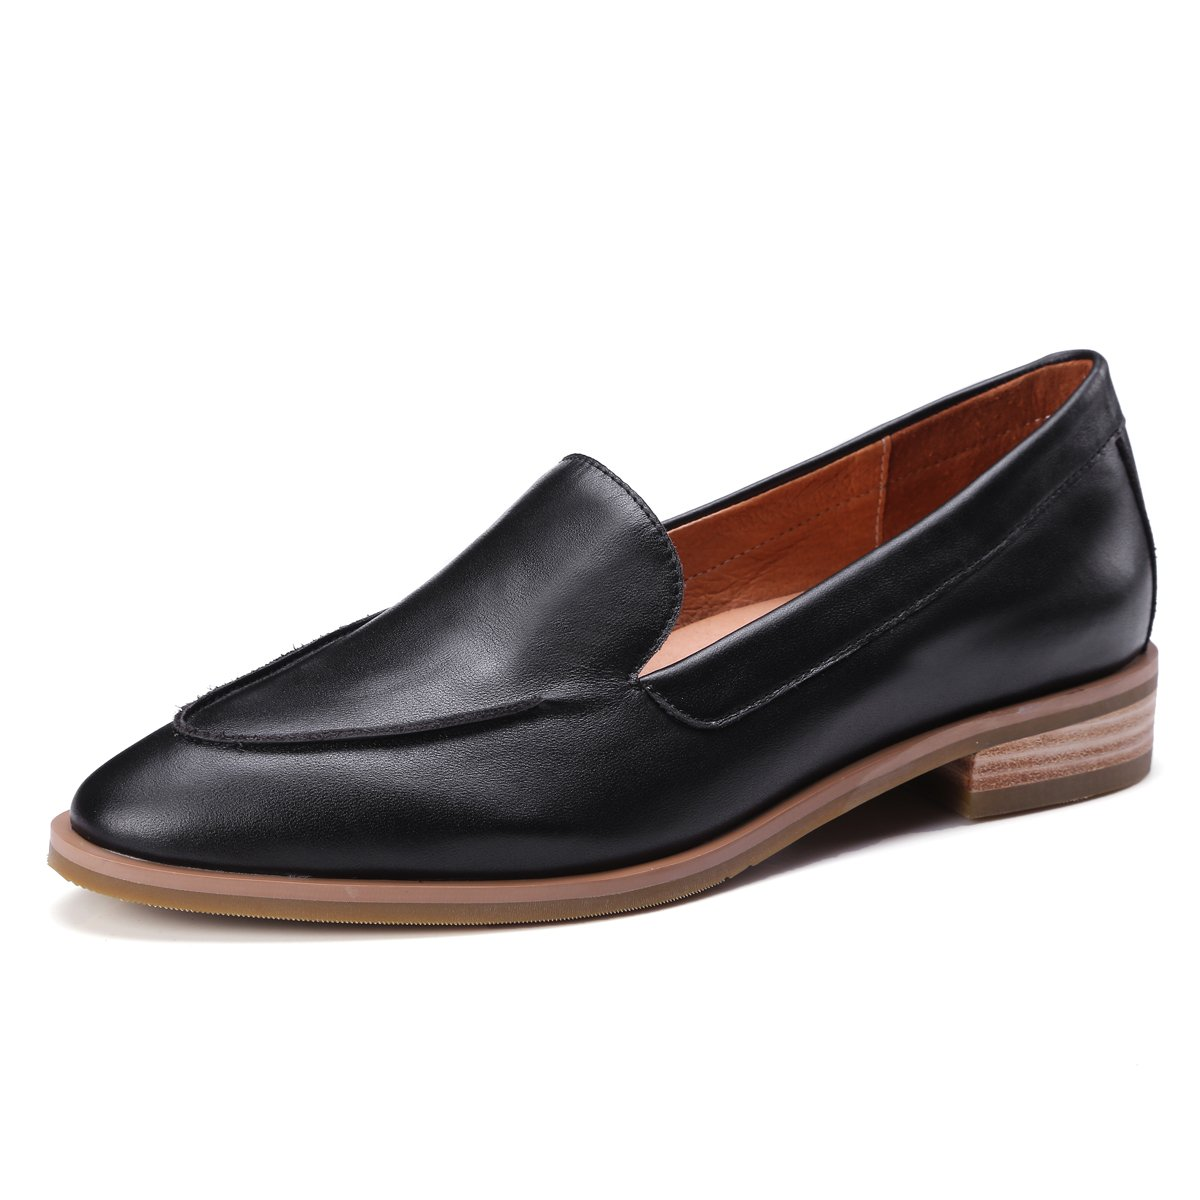 ONEENO Loafers for Women Comfort Casual Slip on Low Heel Cowhide Leather Flat Shoes Black Size 9 US by ONEENO (Image #1)